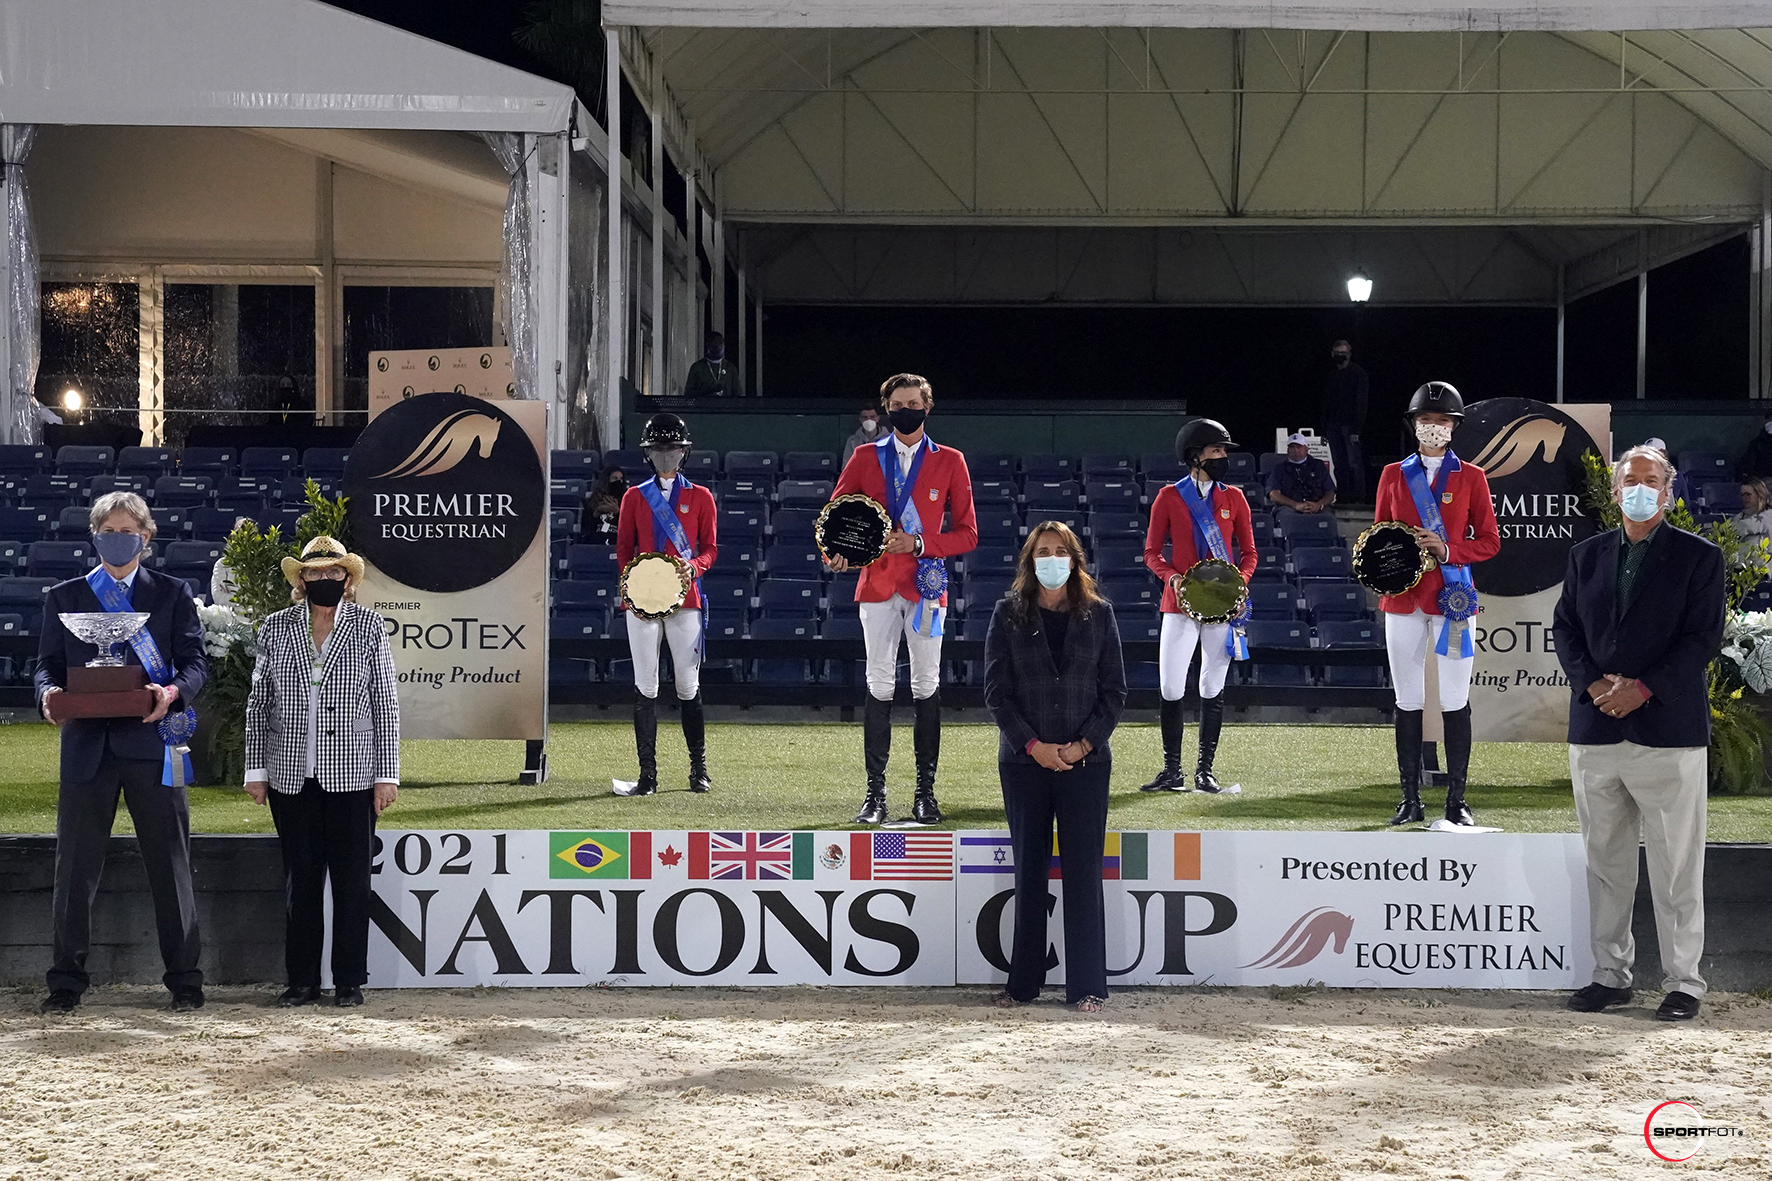 607_8951 The winning Nations Cup U.S. team of Bliss Heers, Brian Moggre, Jessica Springsteen, and Lillie Keenan were joined by Chef d'Equipe Robert Ridland, Sandy Quinlan, Heidi Zorn, President of Premier Equestrian, and Mark Neihart, CEO